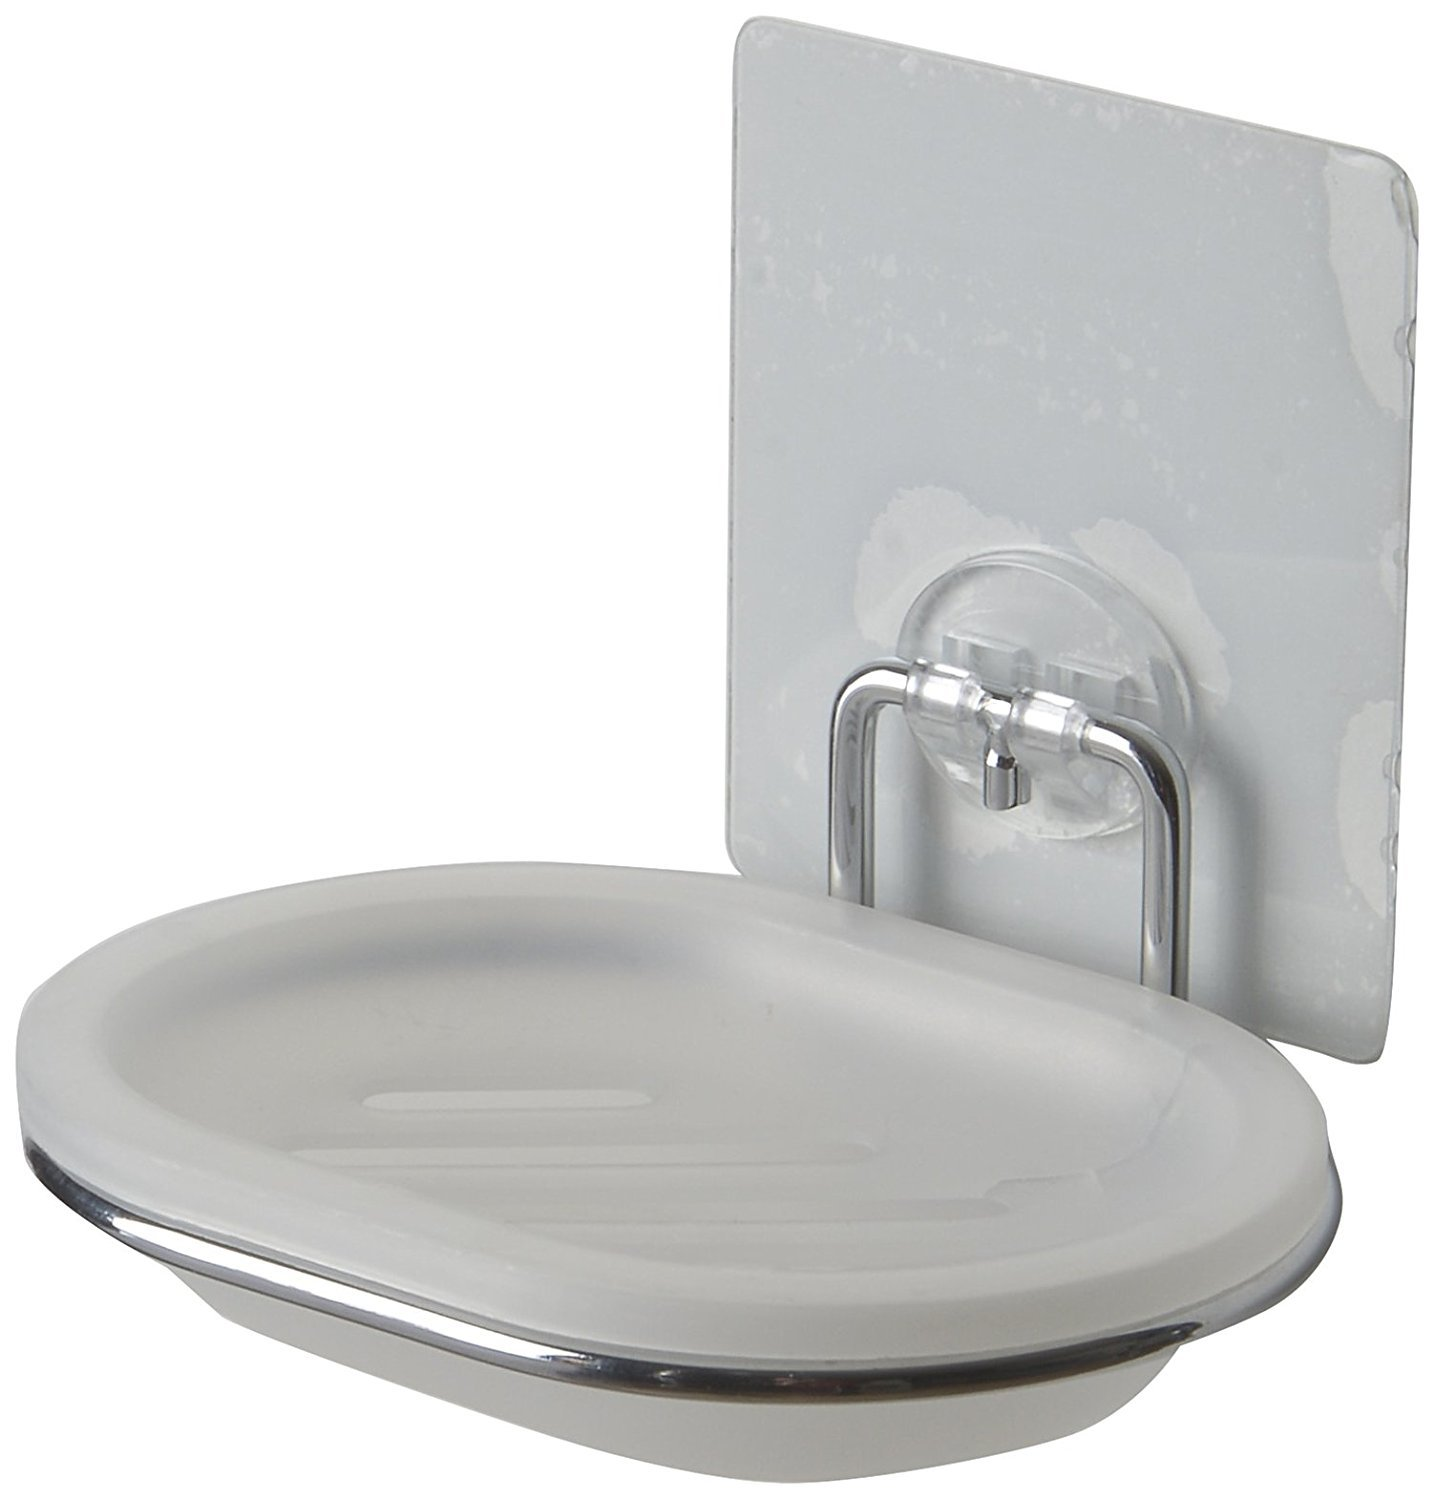 Compactor Bestlock Magic No Drilling Wall Mounted Soap Dish with Holder, Chrome and White C.I.E. Europe B00KRYQWO2